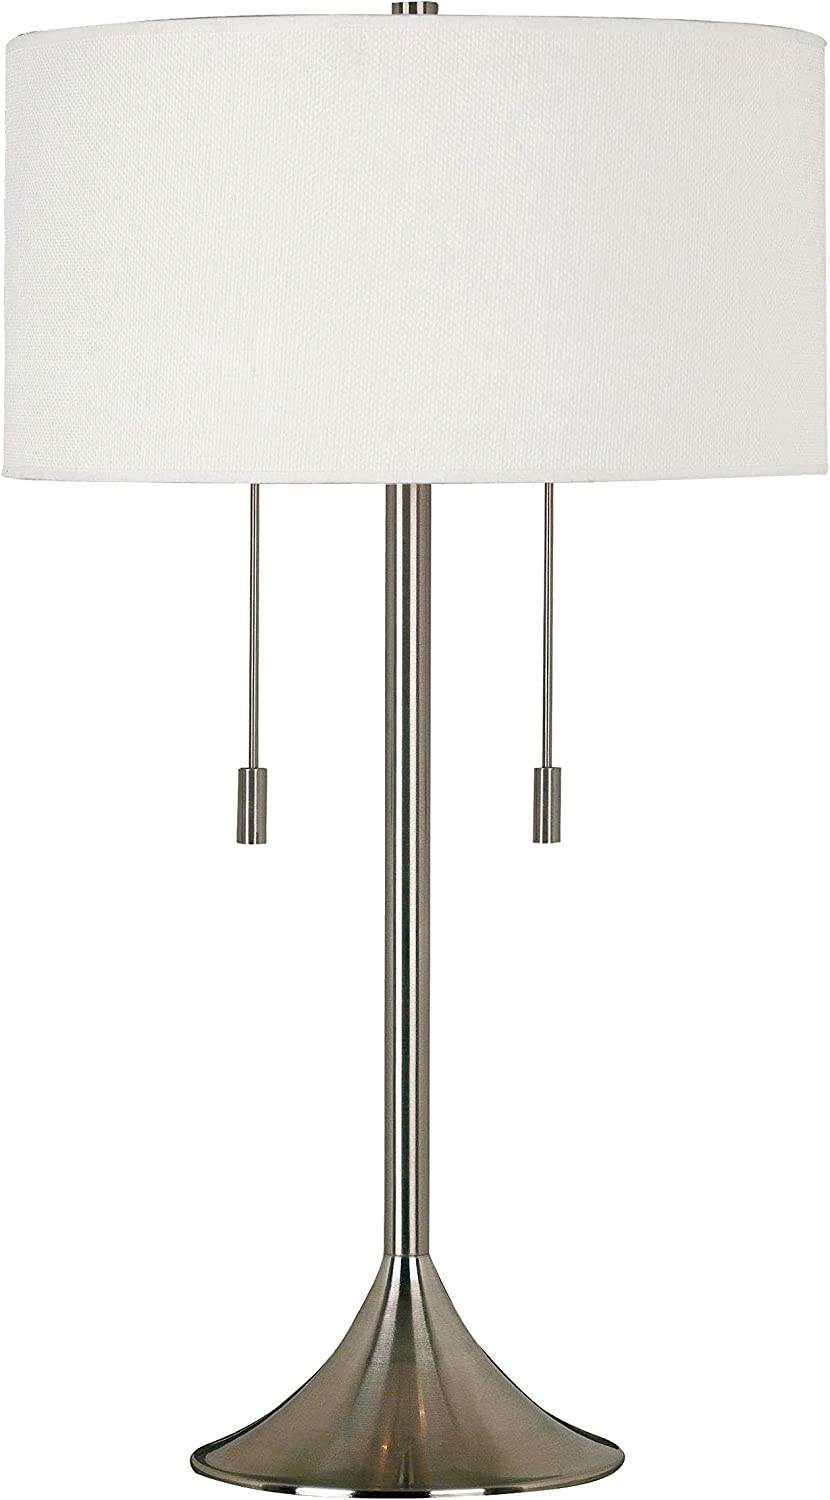 Kenroy Home Kenroy 21404BS Transitional Two Light Table Lamp from Stowe Collection in Pwt, Nckl, B/S, Slvr. Finish, 17.00 inches, Brushed Steel